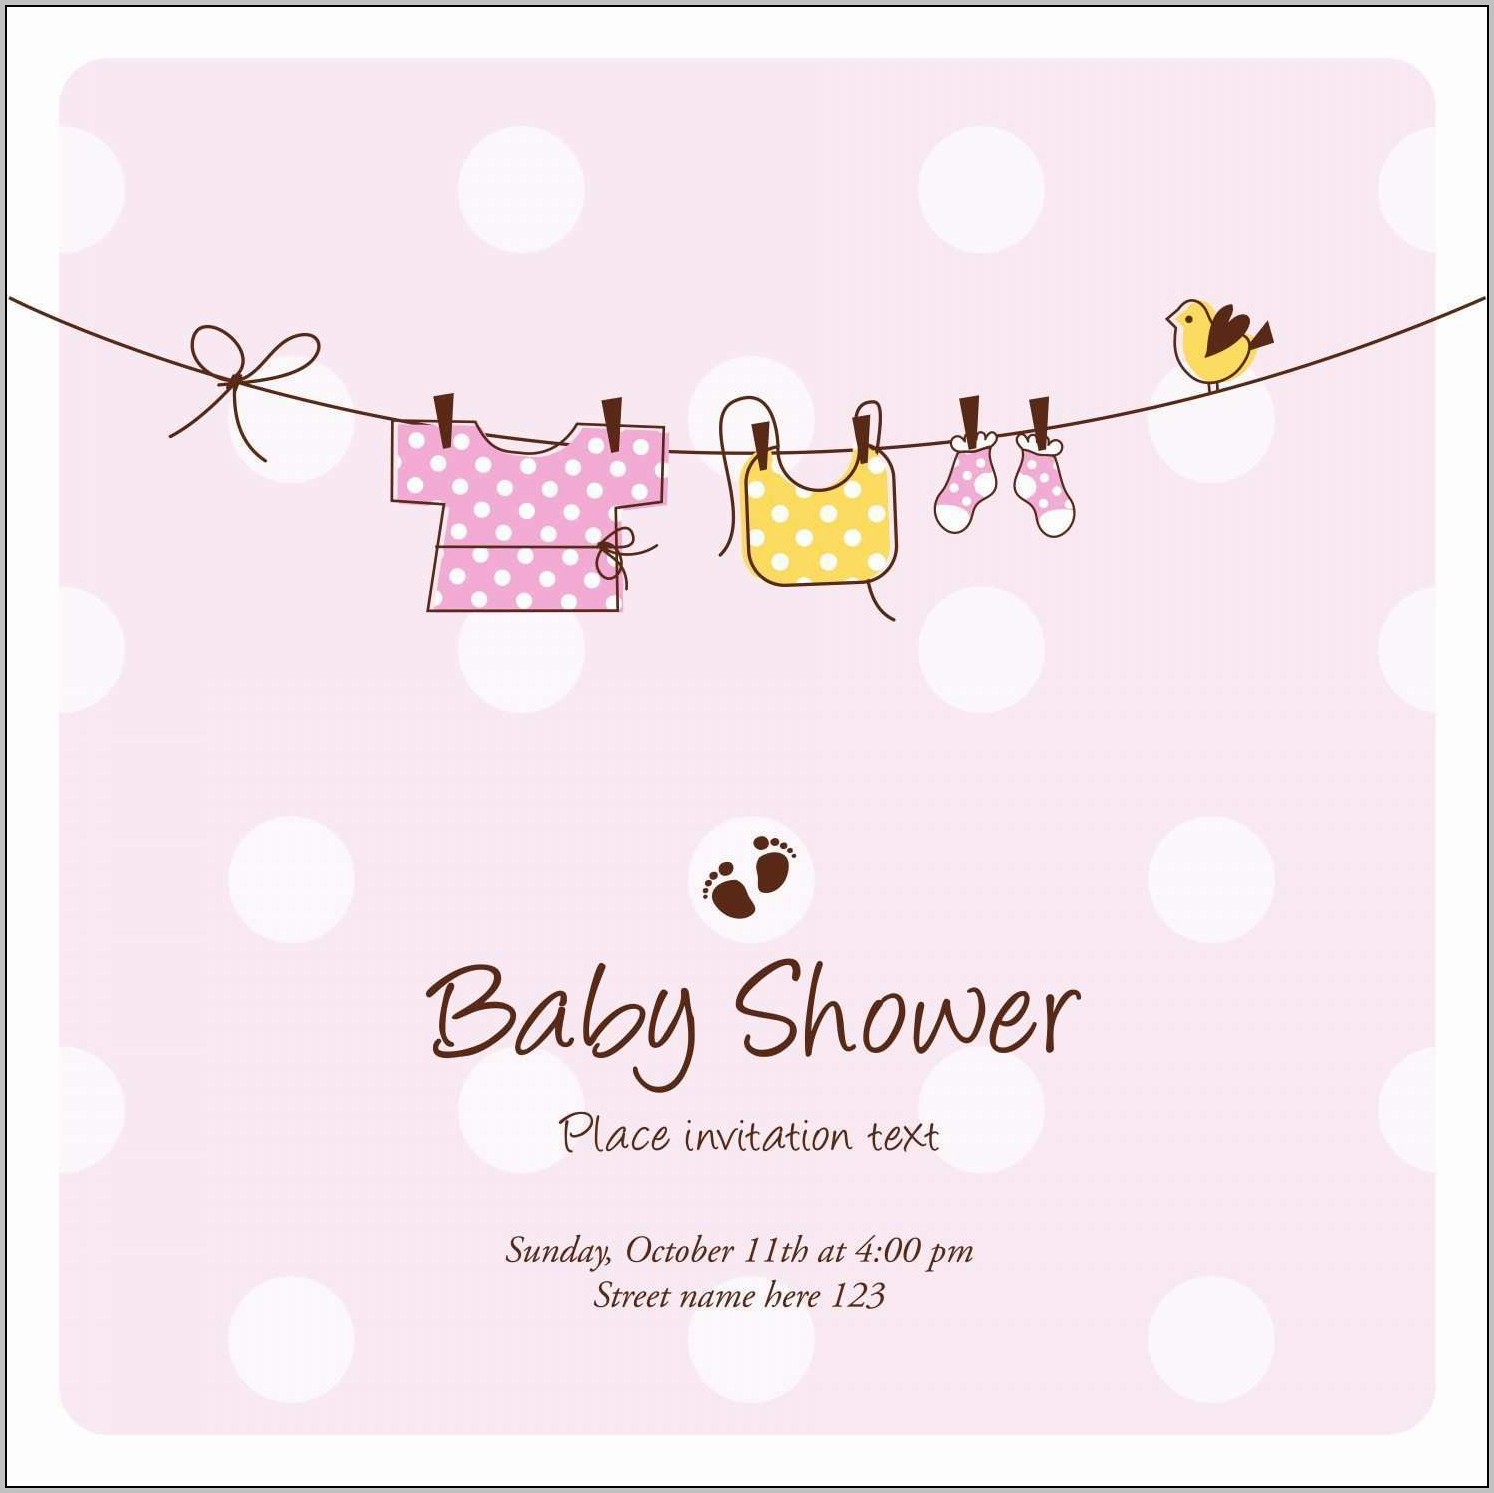 Baby Shower Invite Template For Email